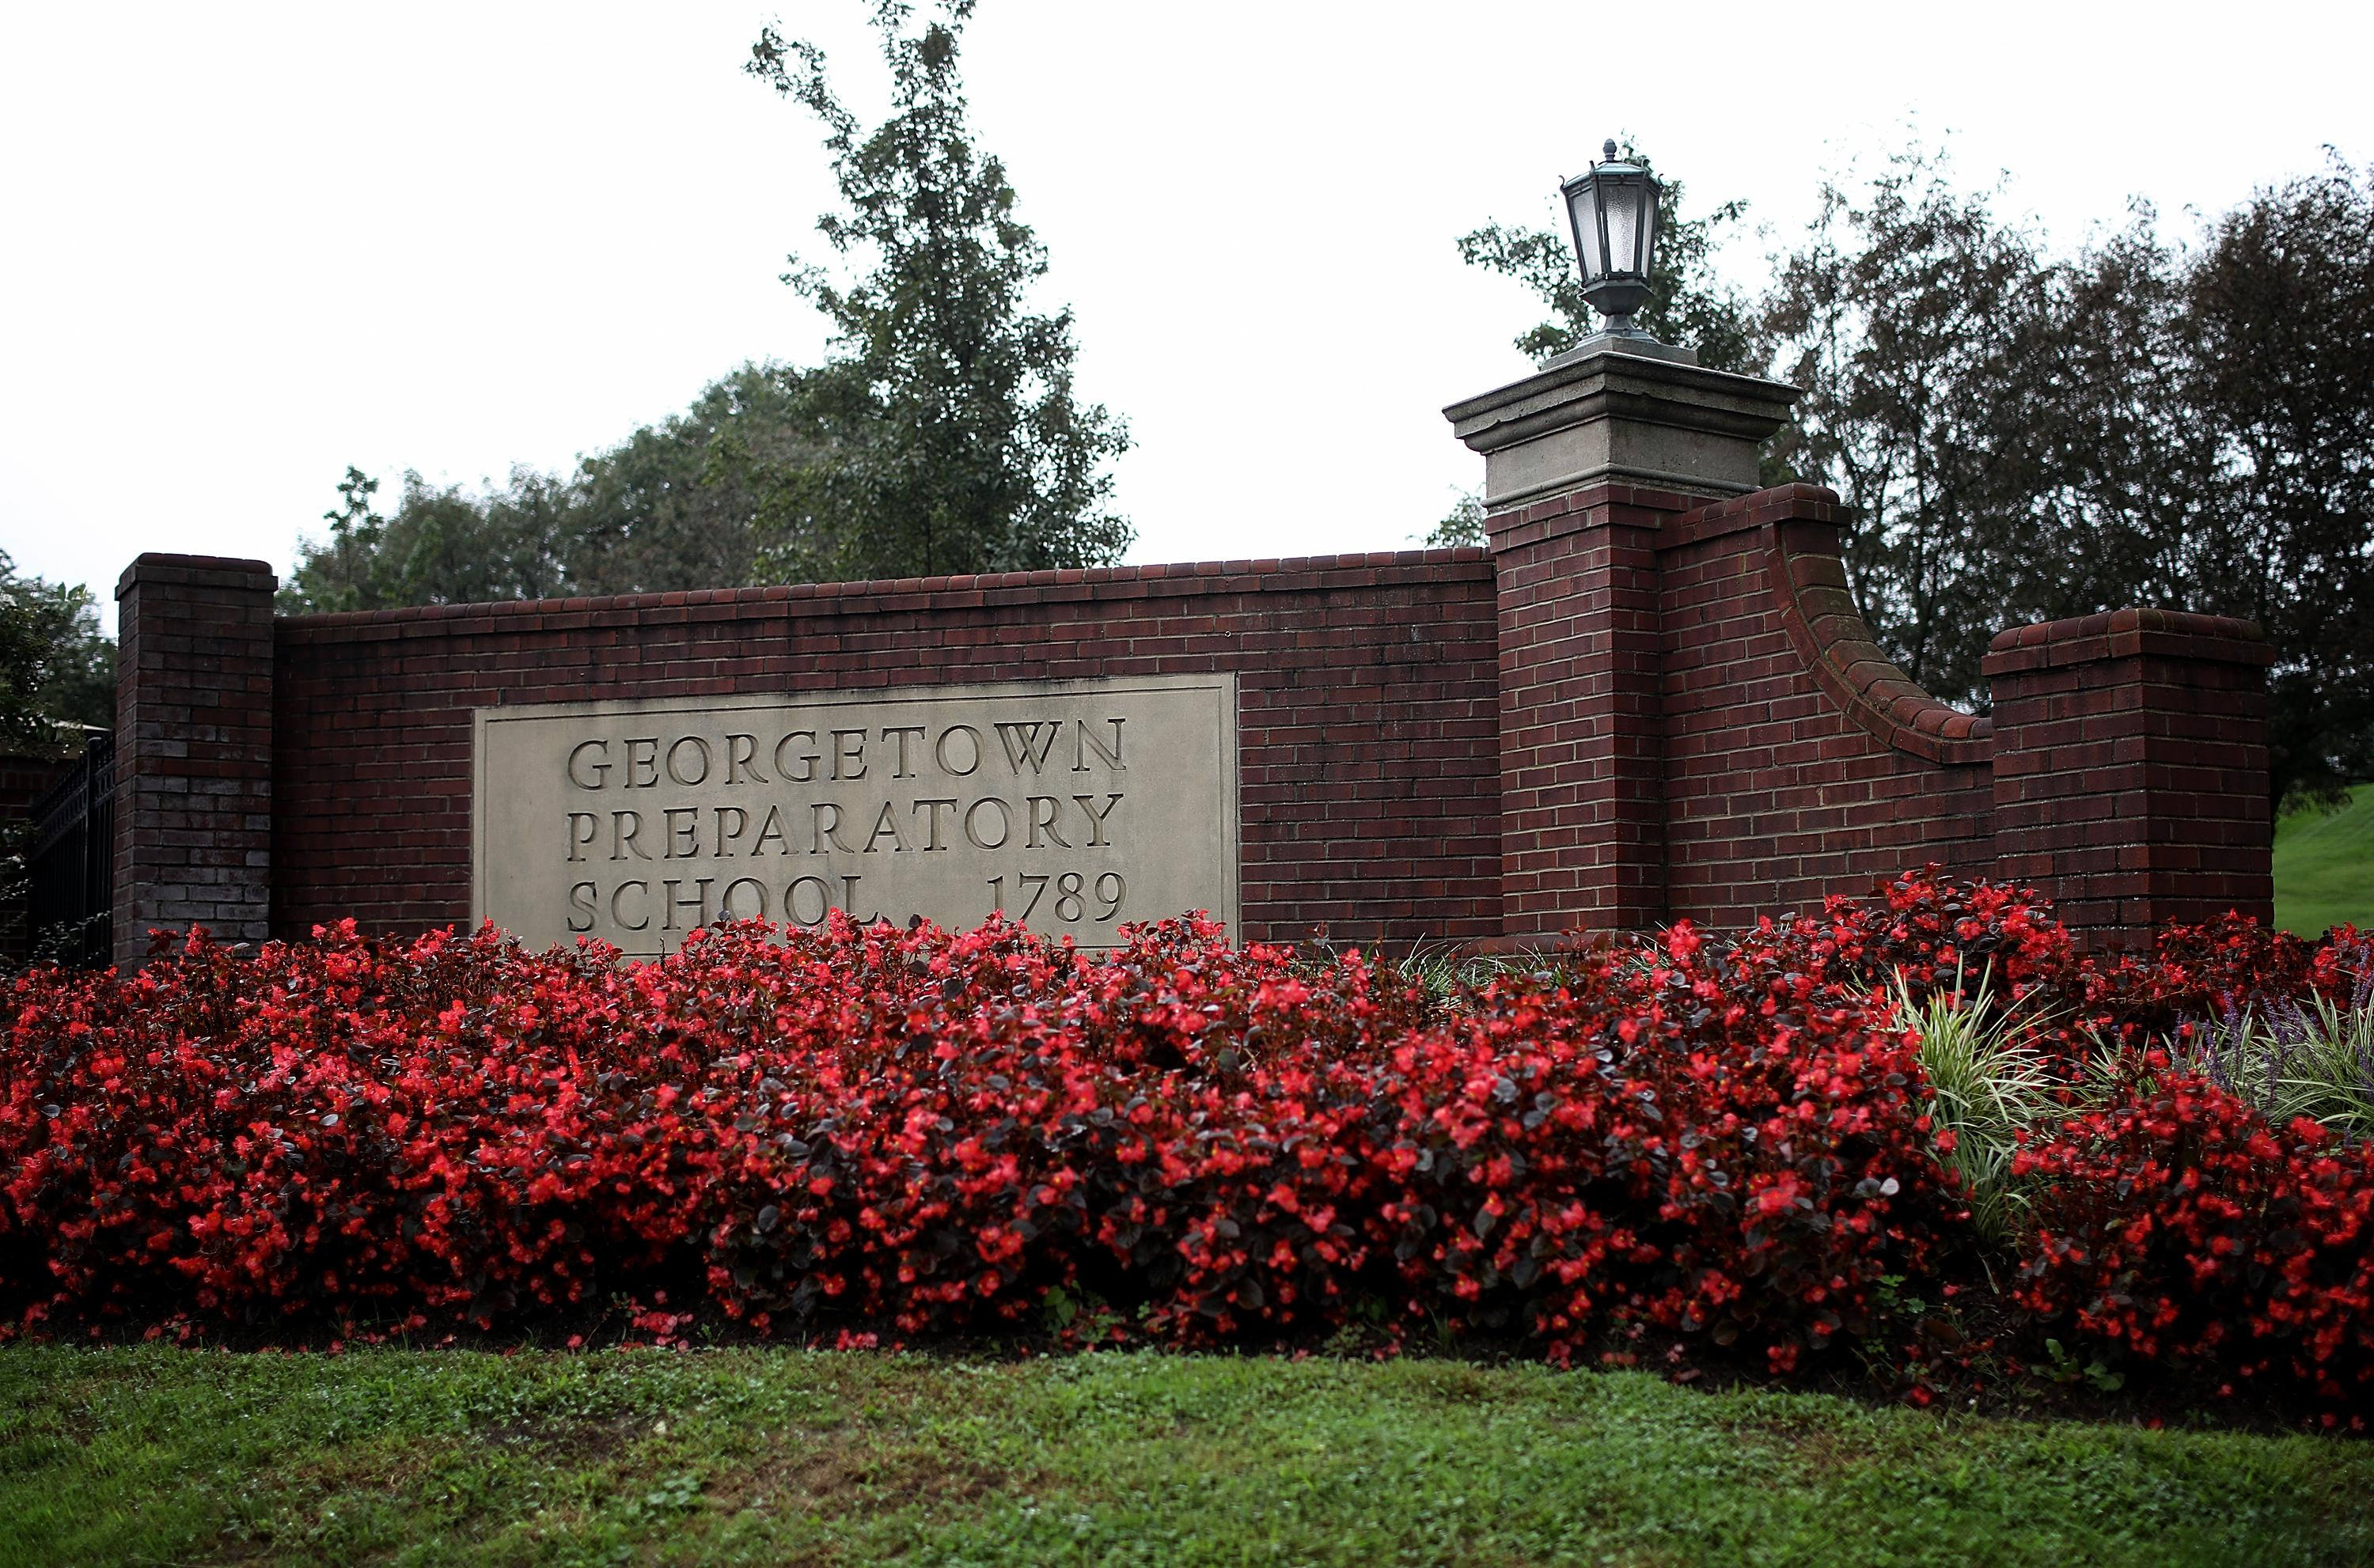 A sign for the Georgetown Preparatory School surrounded by red flowers.